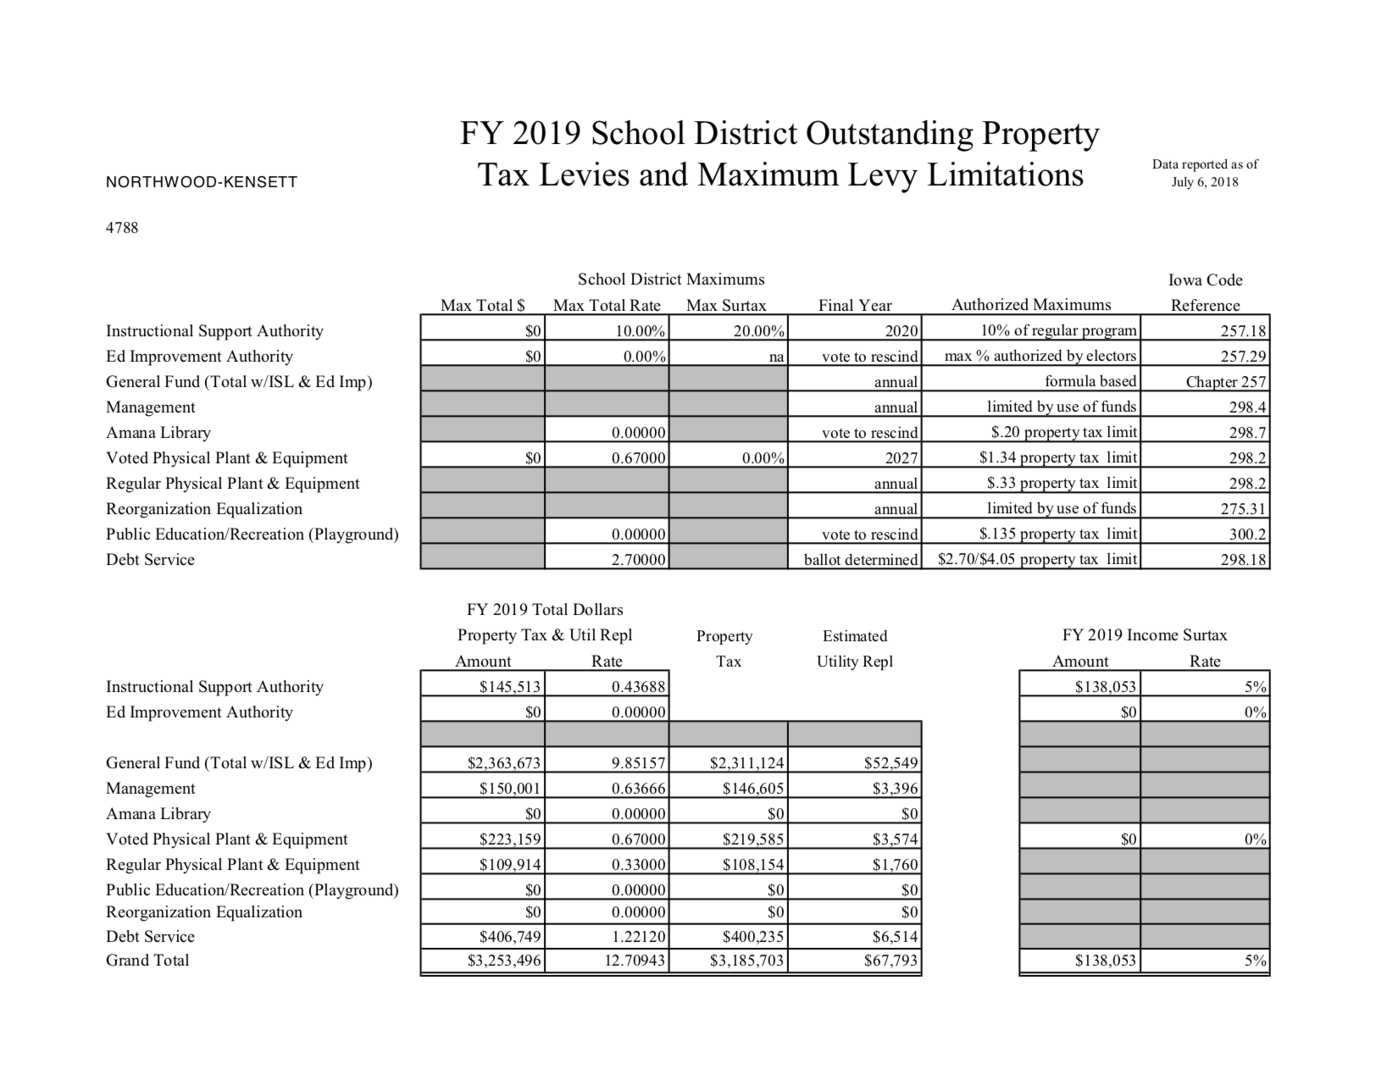 FY 2019 Property Tax Levies preview picture